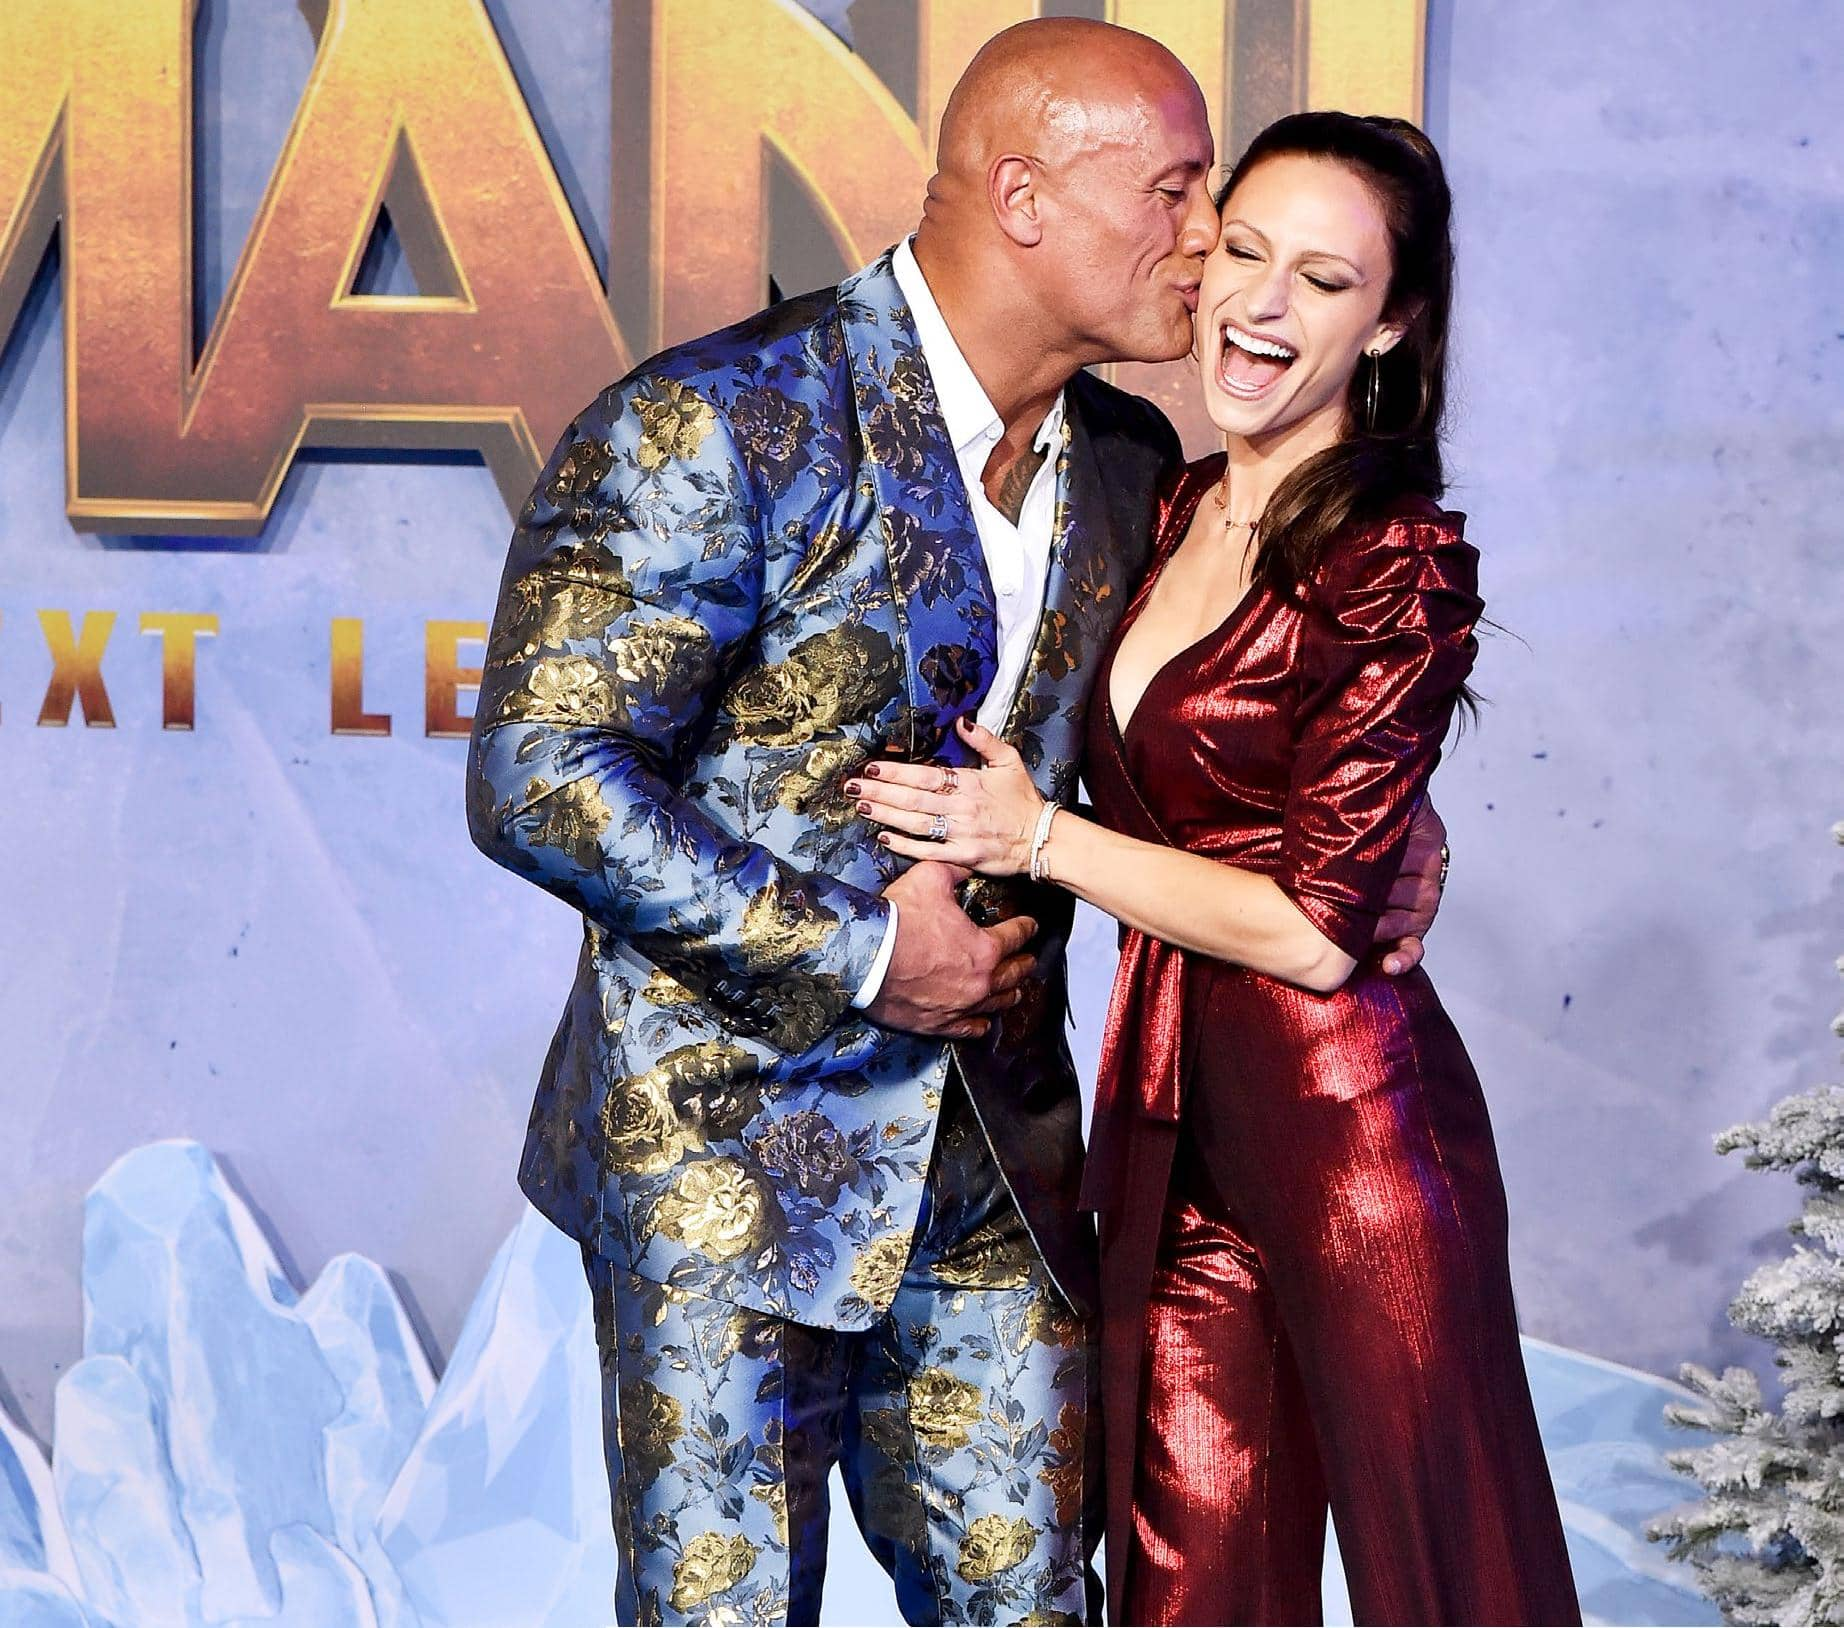 The Rock's Soft Side 'My Wife Saved Me!'